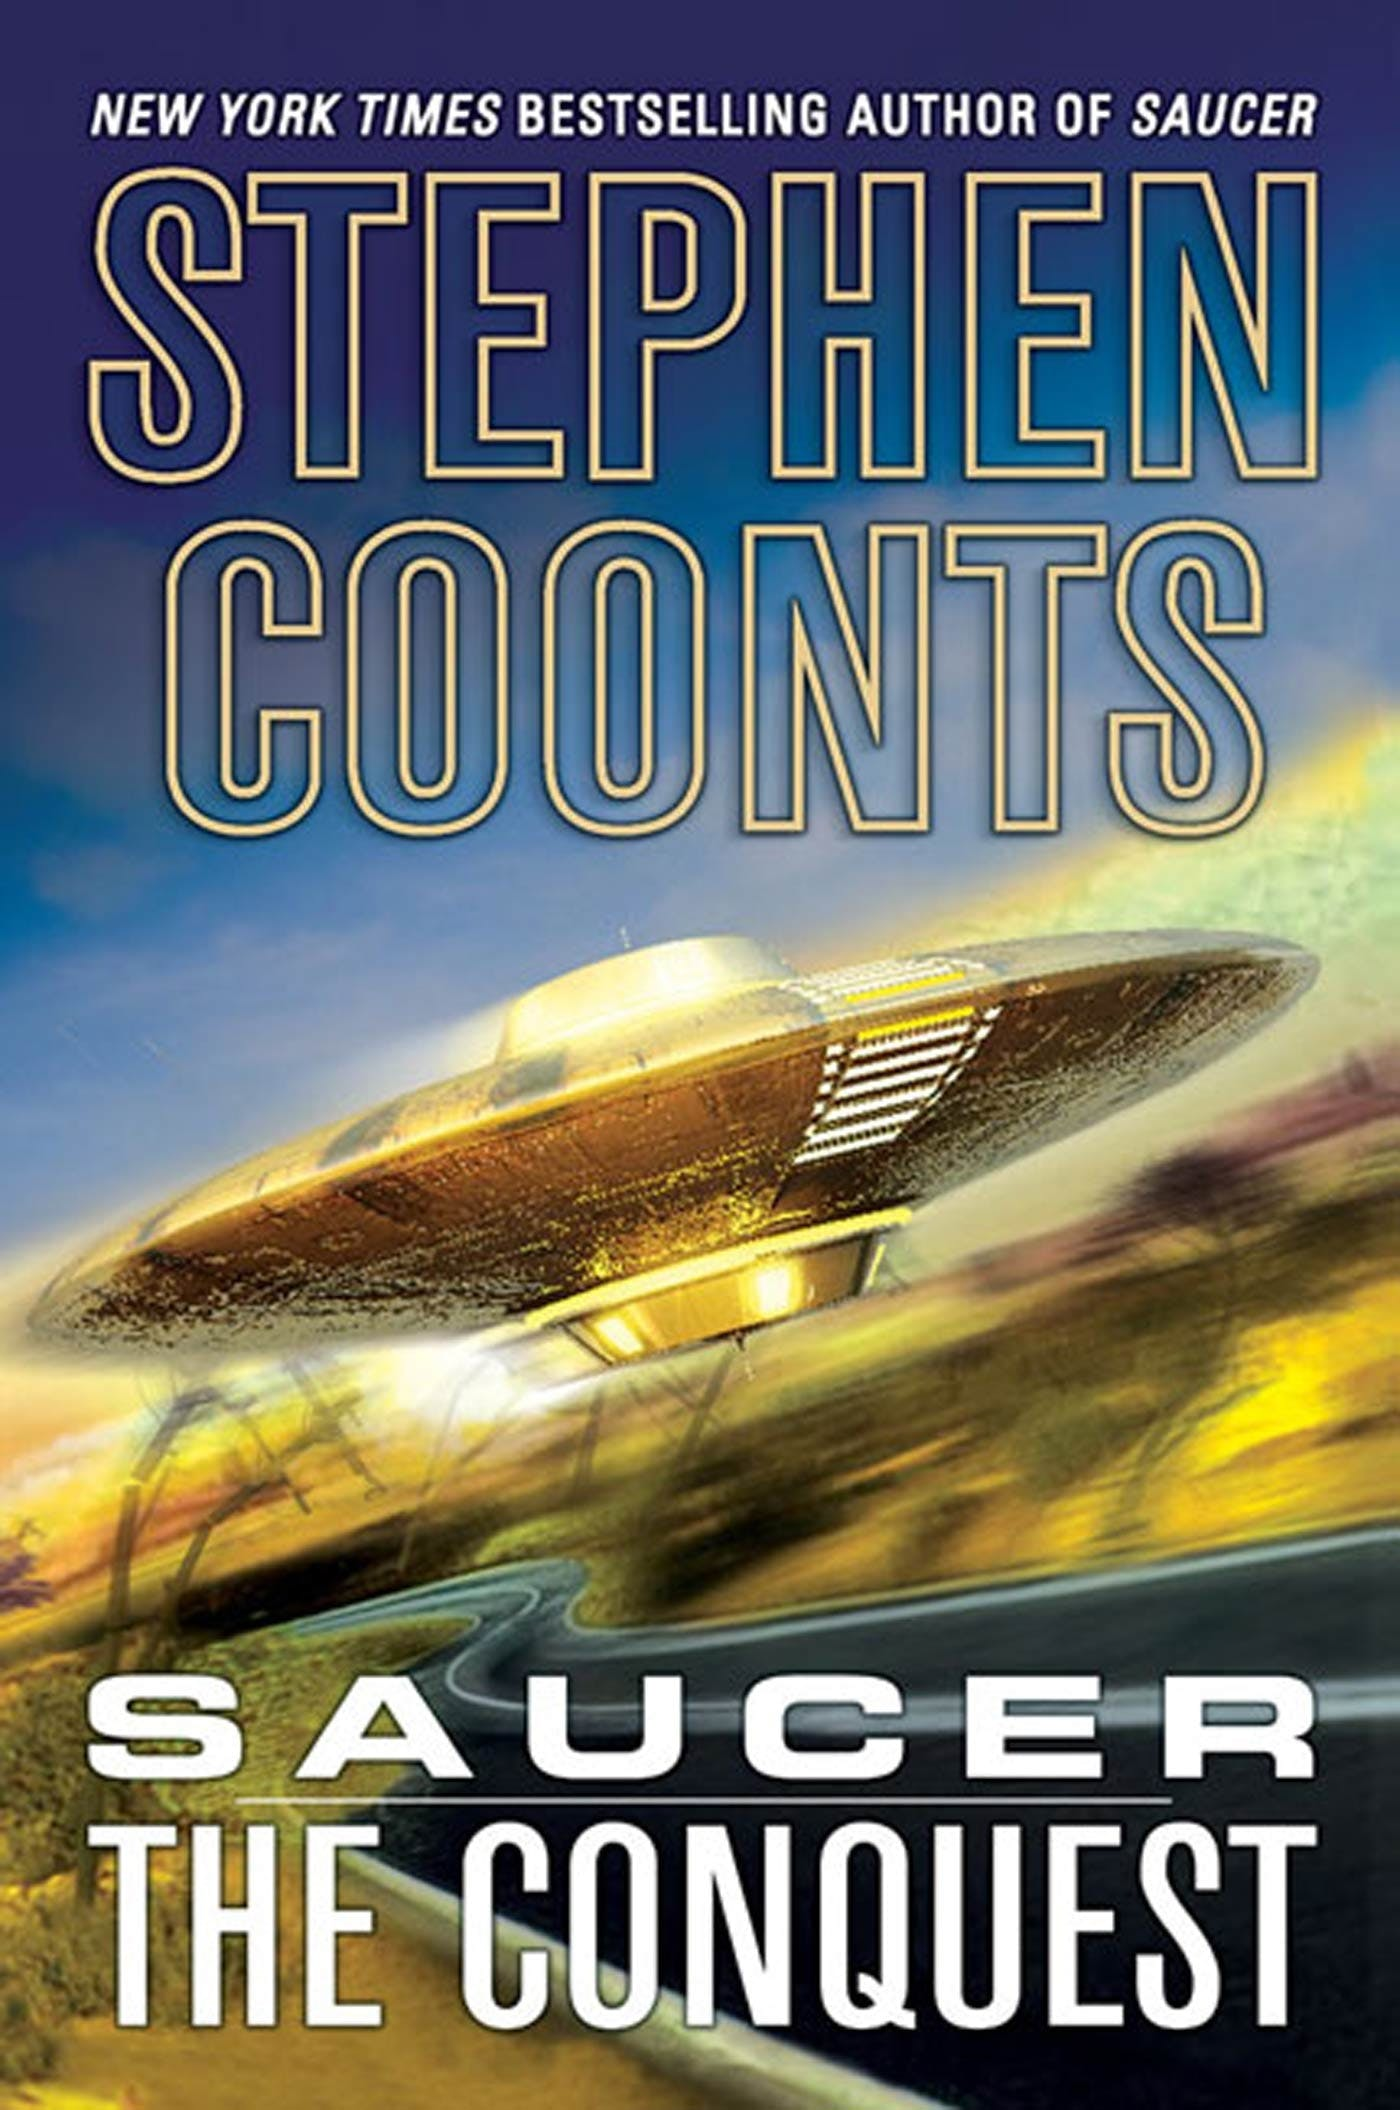 Image of Saucer: The Conquest